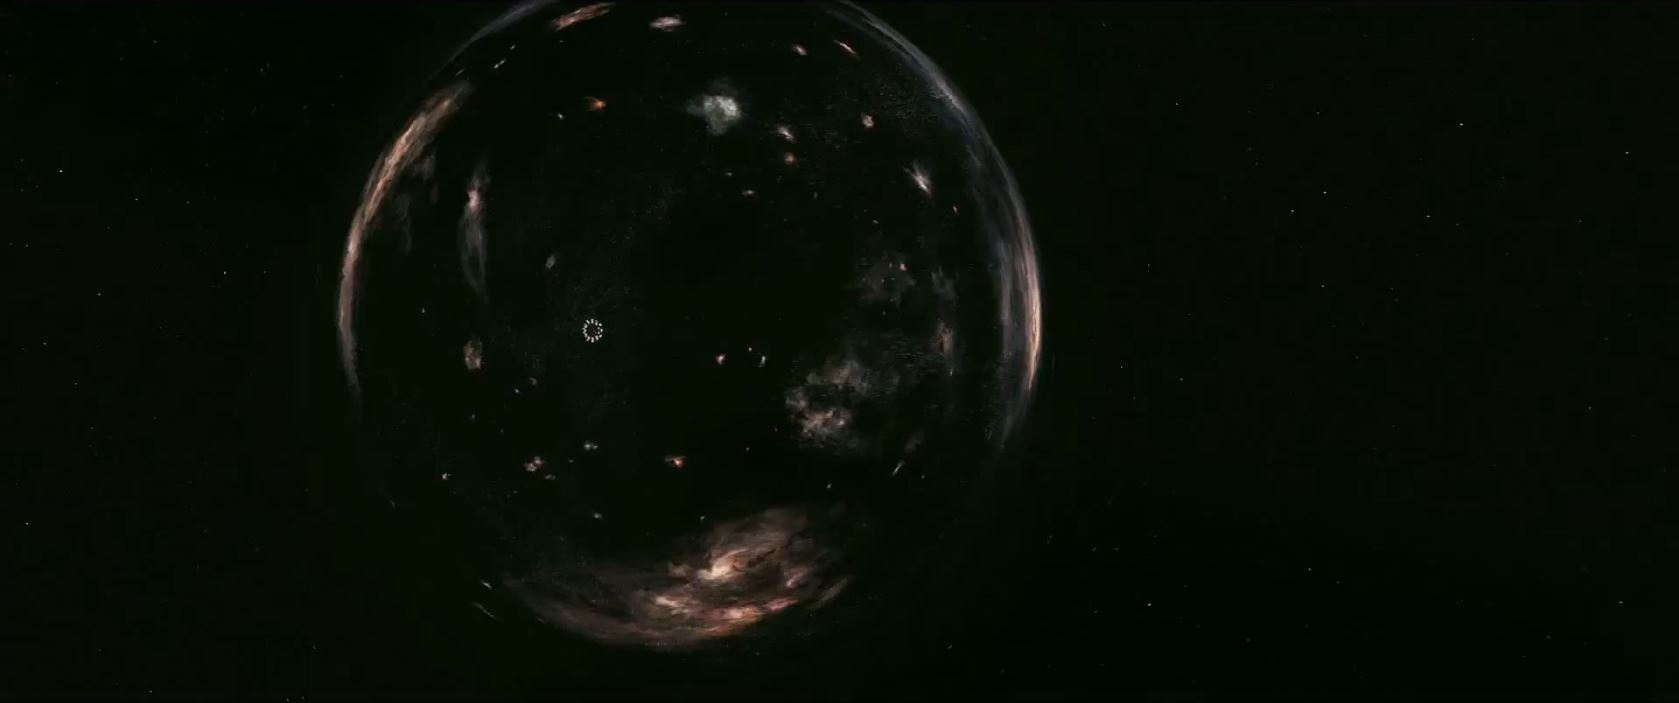 Interstellar trailer - wormhole